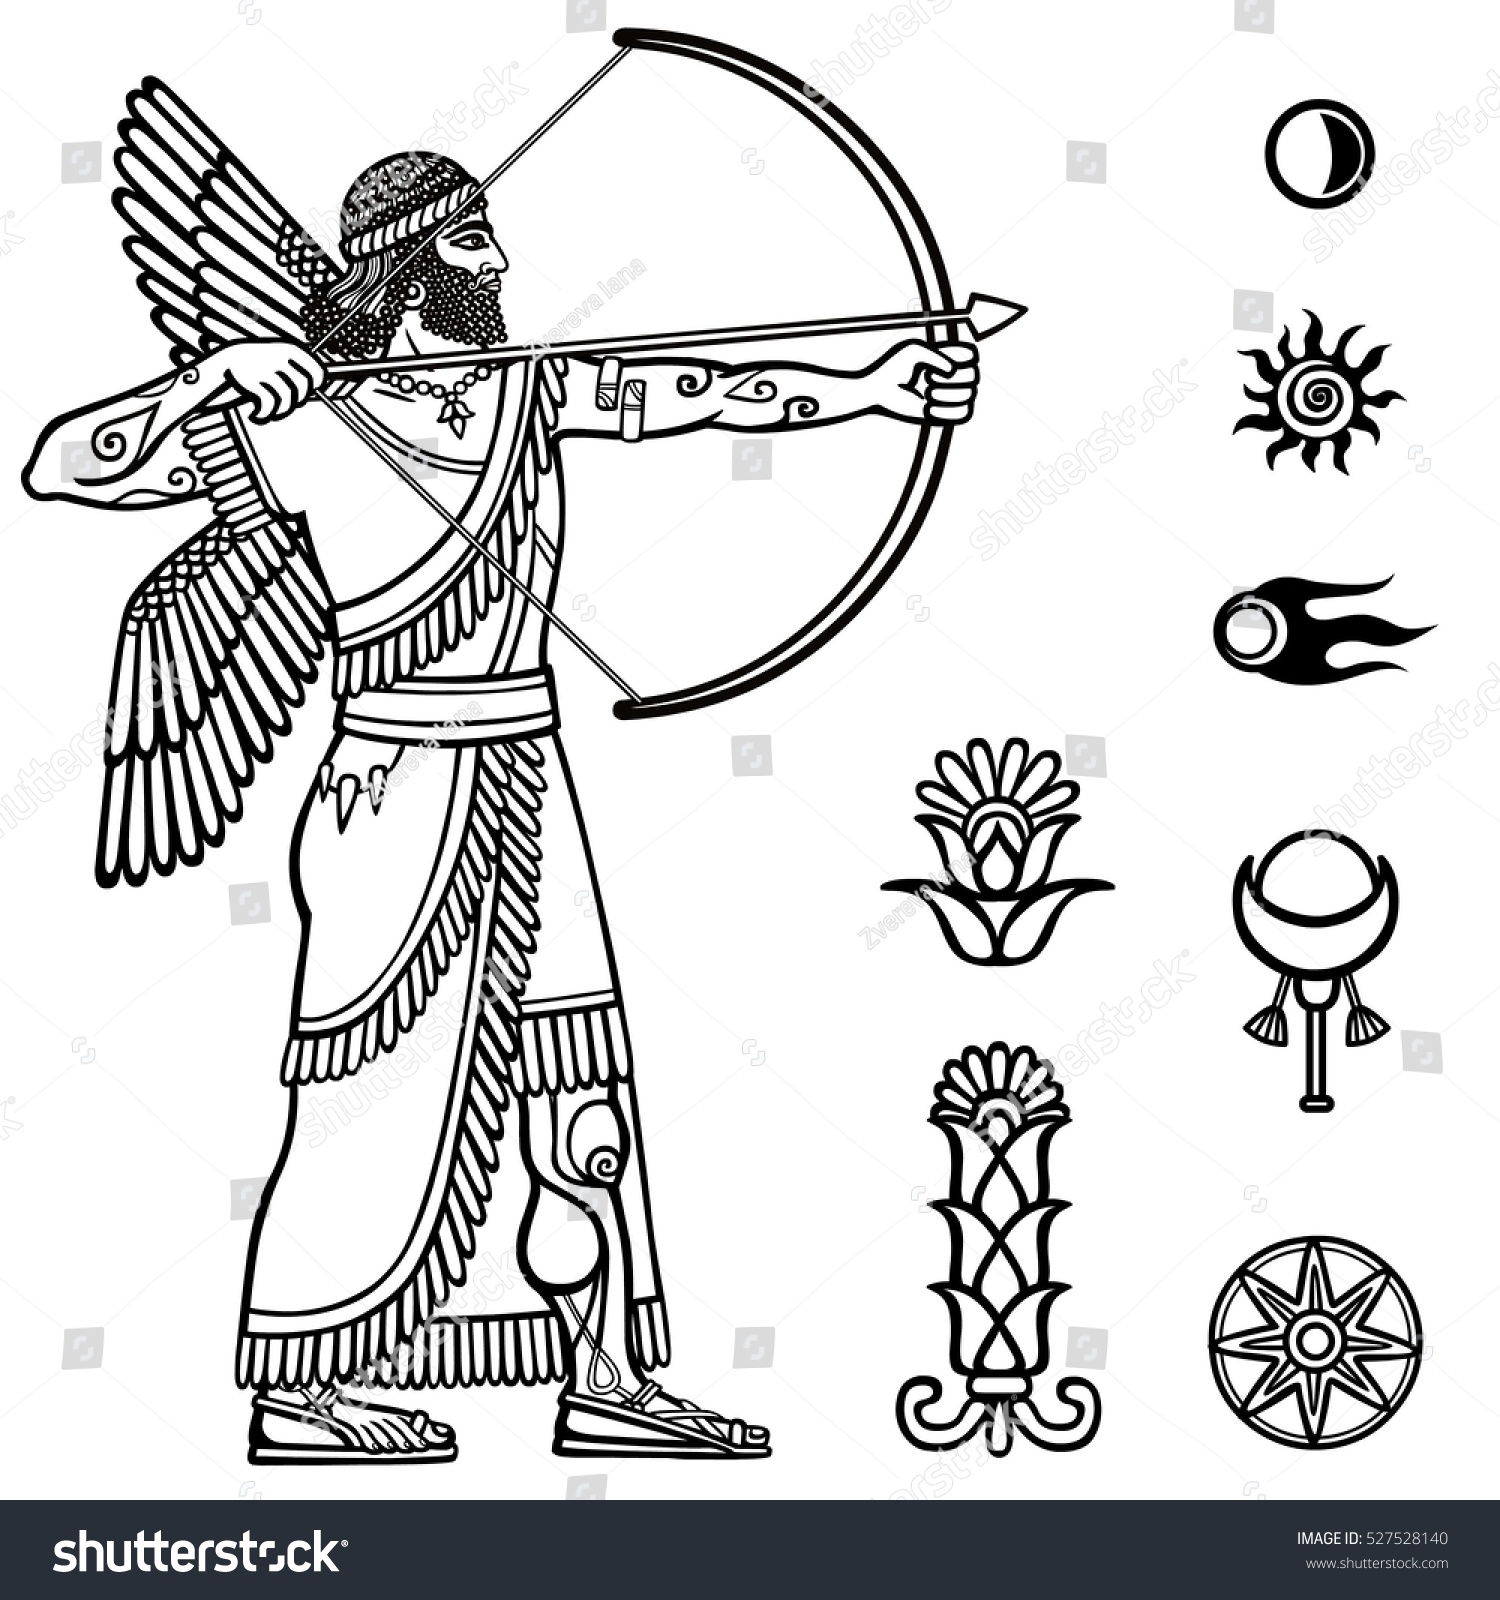 Image Ancient Archer Full Growth Black Stock Vector Royalty Free